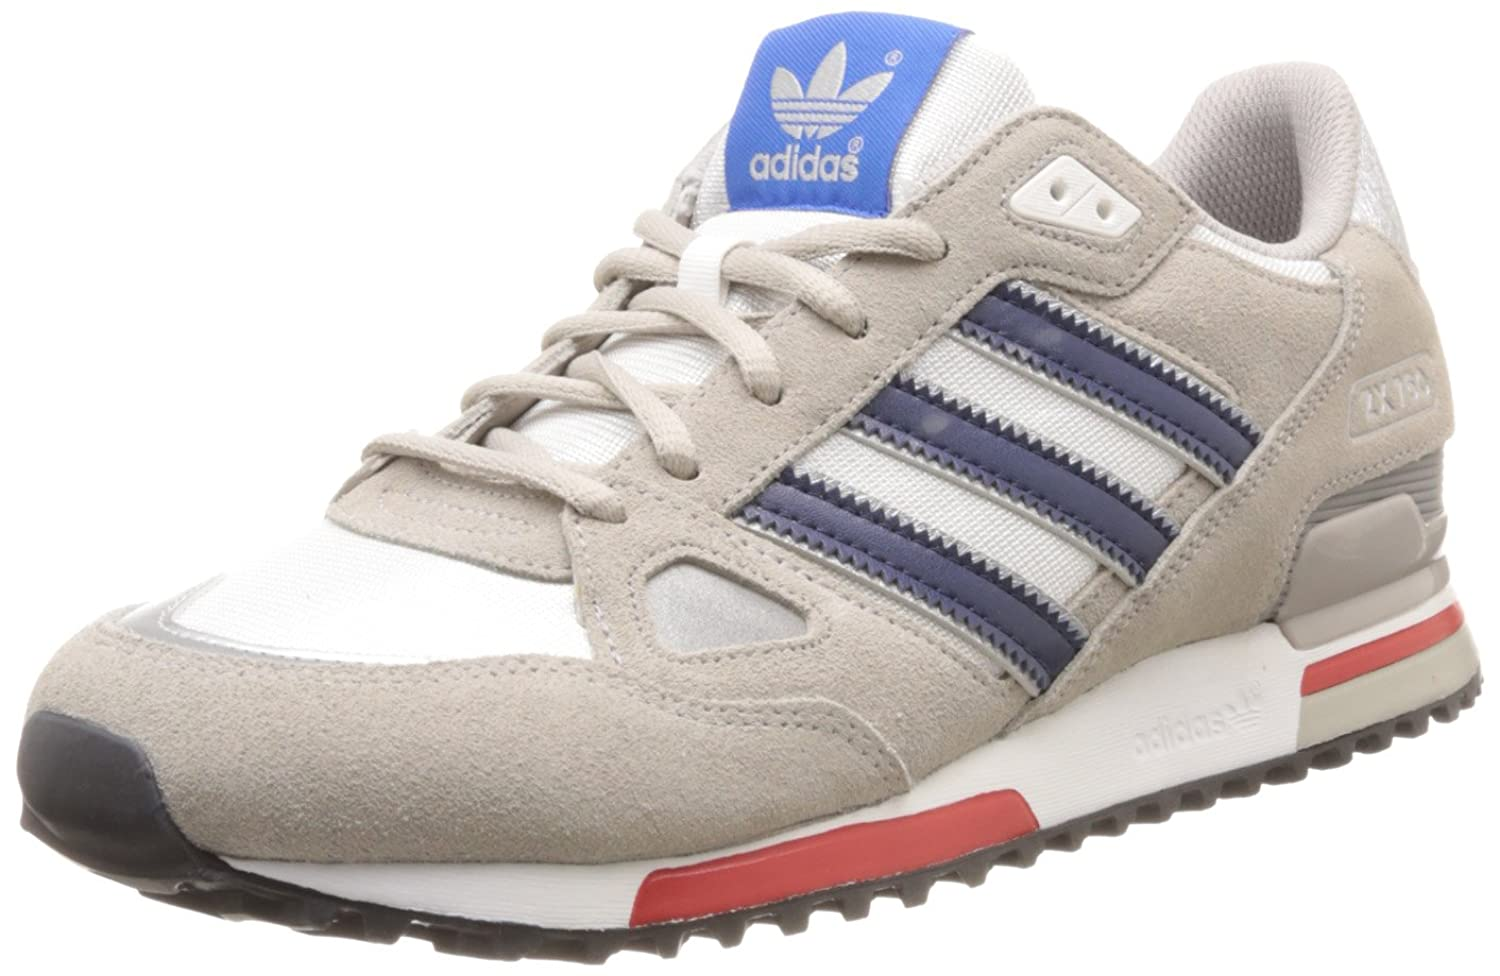 adidas zx 750 sports direct